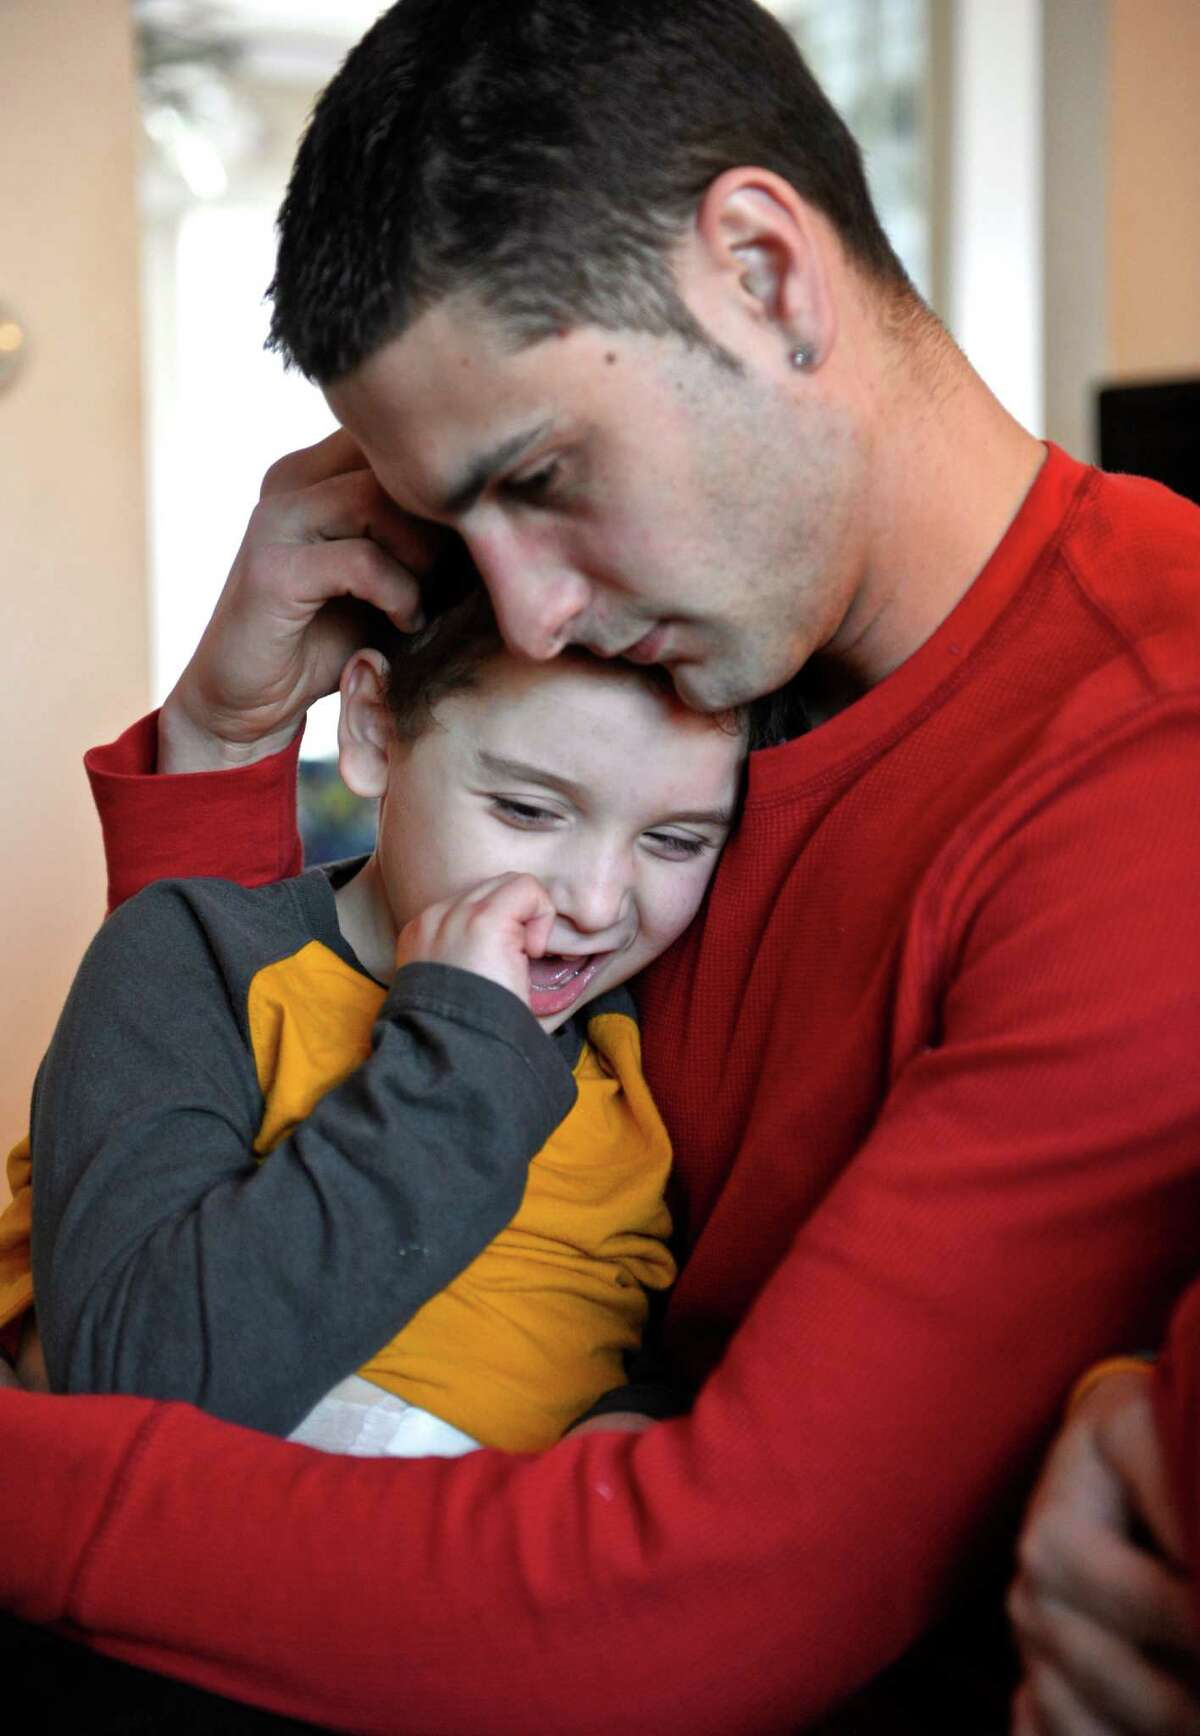 Jayce Correia sits with his son Jared Carreras, 8, in their Brookfield, Conn, home, on Tuesday, February 3, 2015. Correia made a video, of a rap song he composed, with Jared and uploaded it to YouTube, it has had over 500,000 hits. Jared was born with cerebral palsy, hydrocephalus, epilepsy, and several other debilitating medical conditions as a result of a stroke he suffered in utero. His parents feel that although Jared can't stand, walk, talk or see, he is a